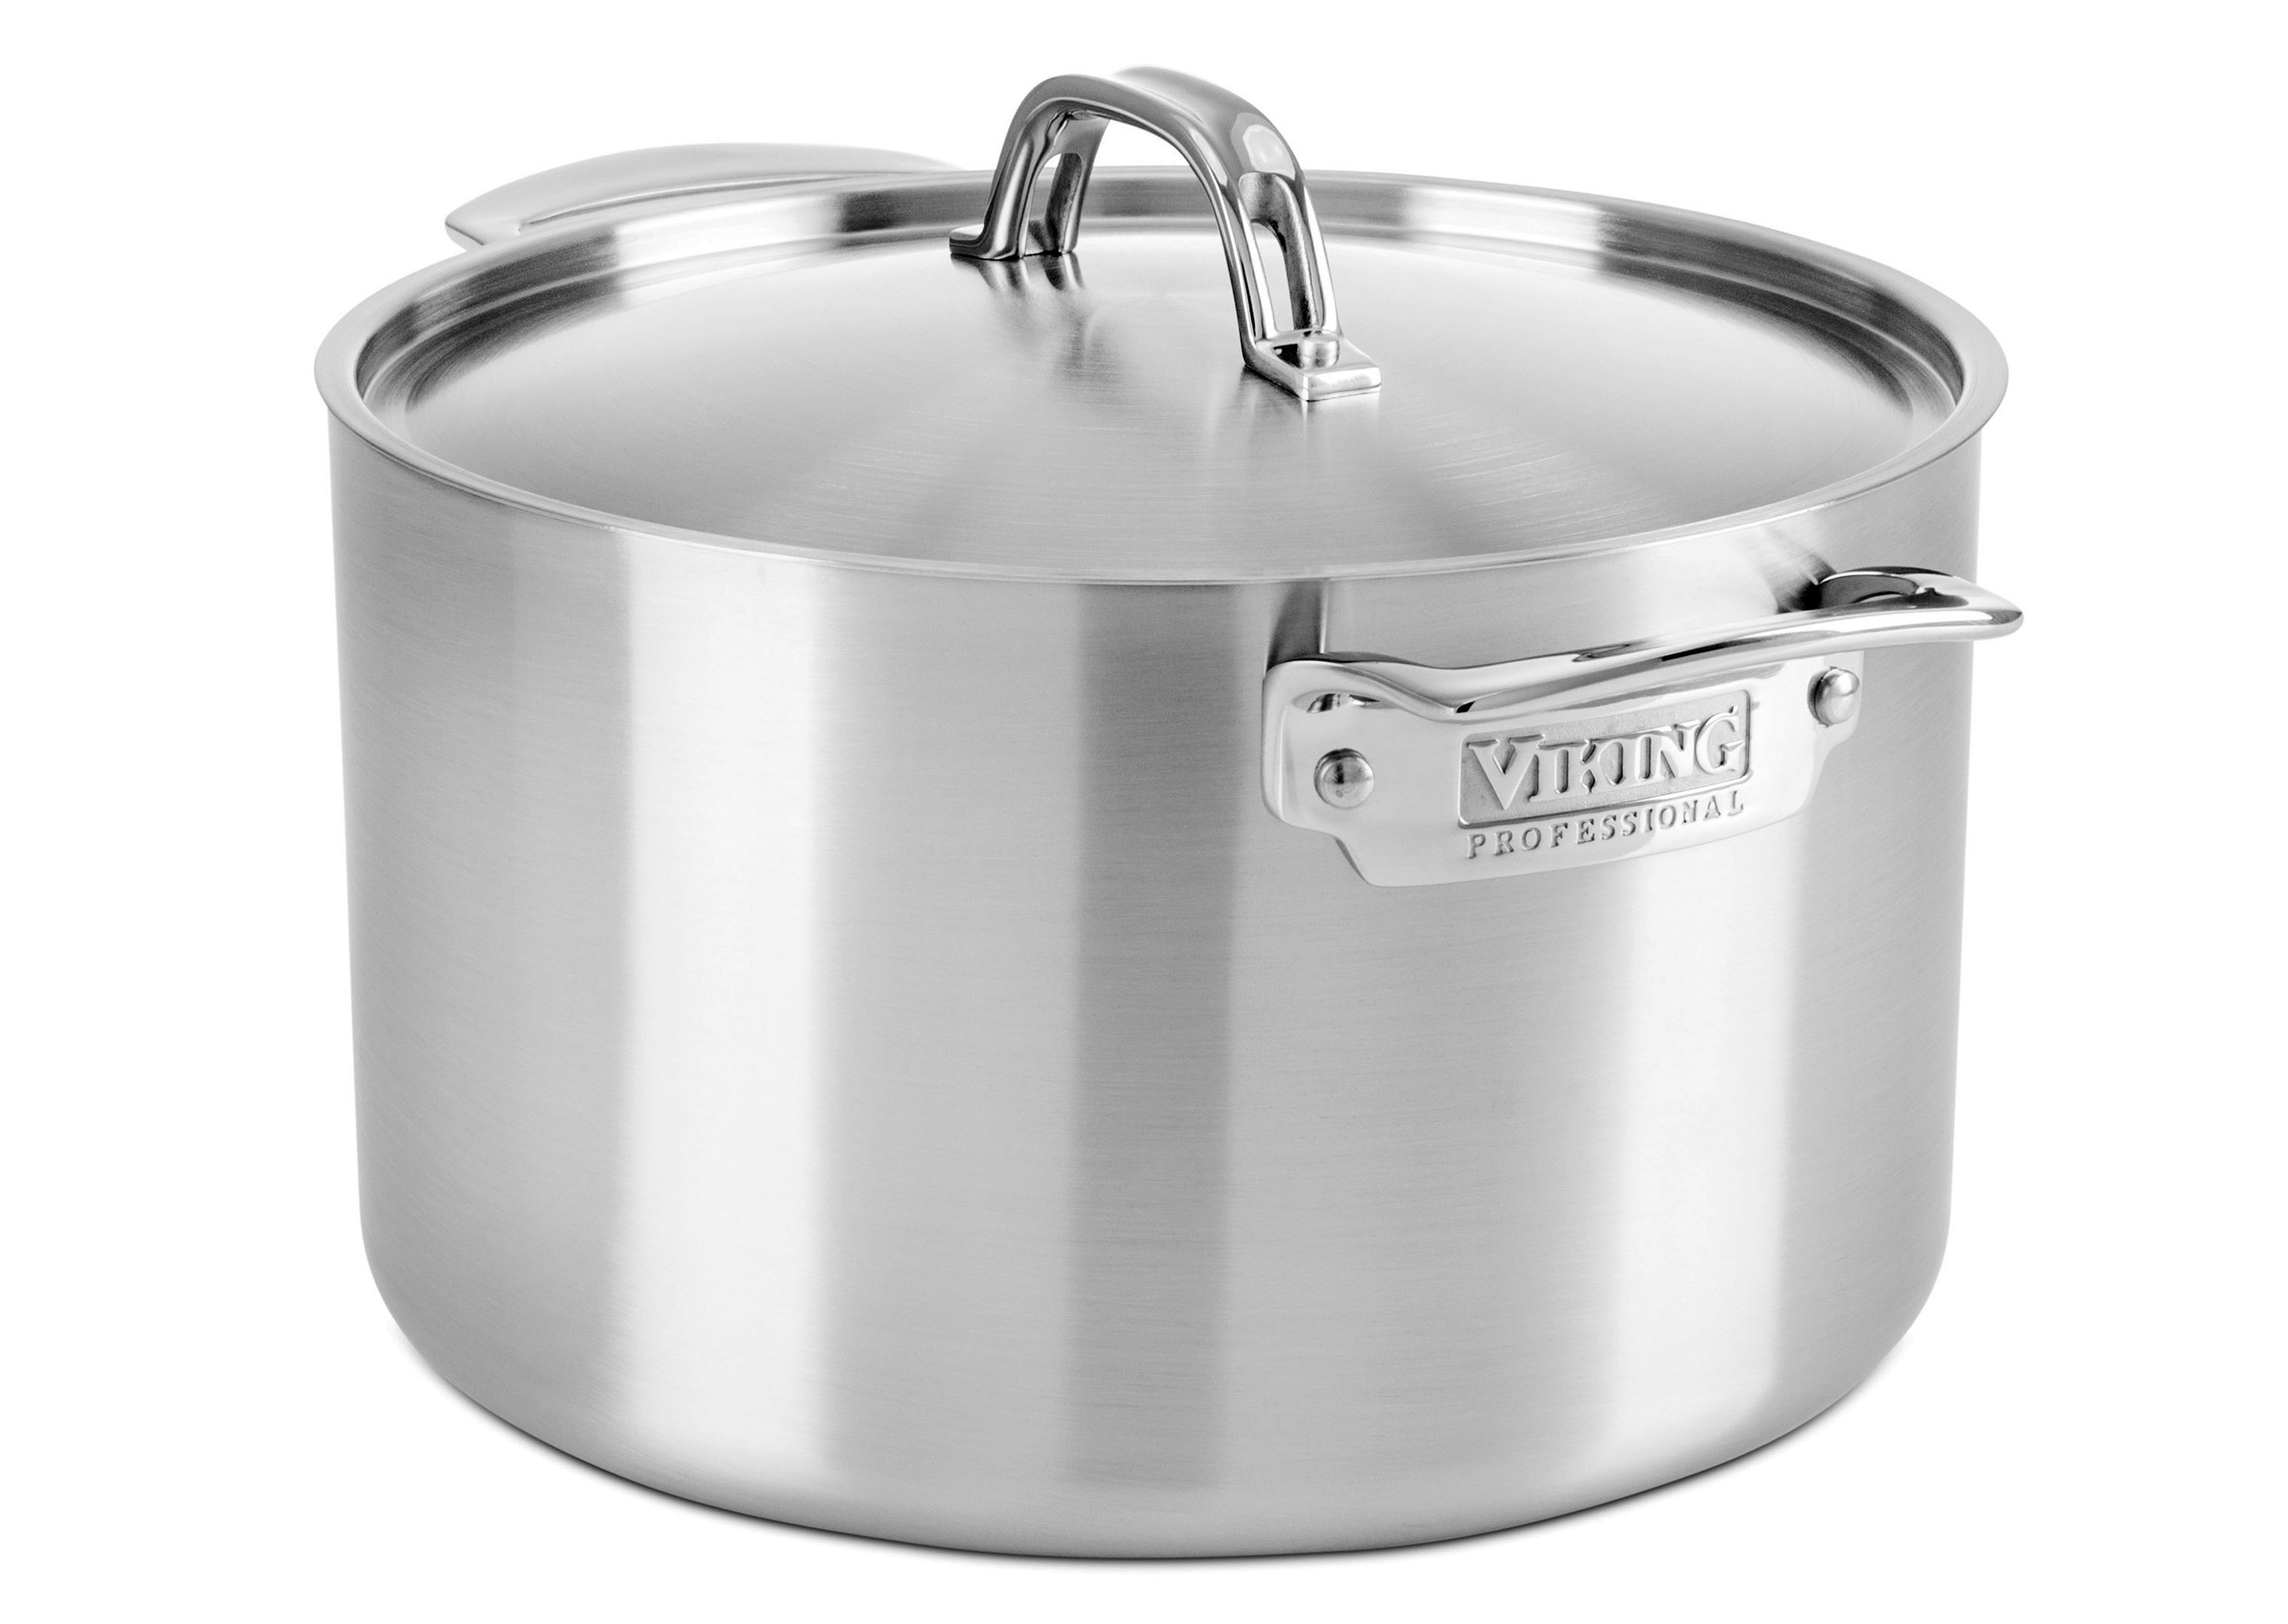 Viking Professional 5 Ply Stainless Steel Stock Pot 8